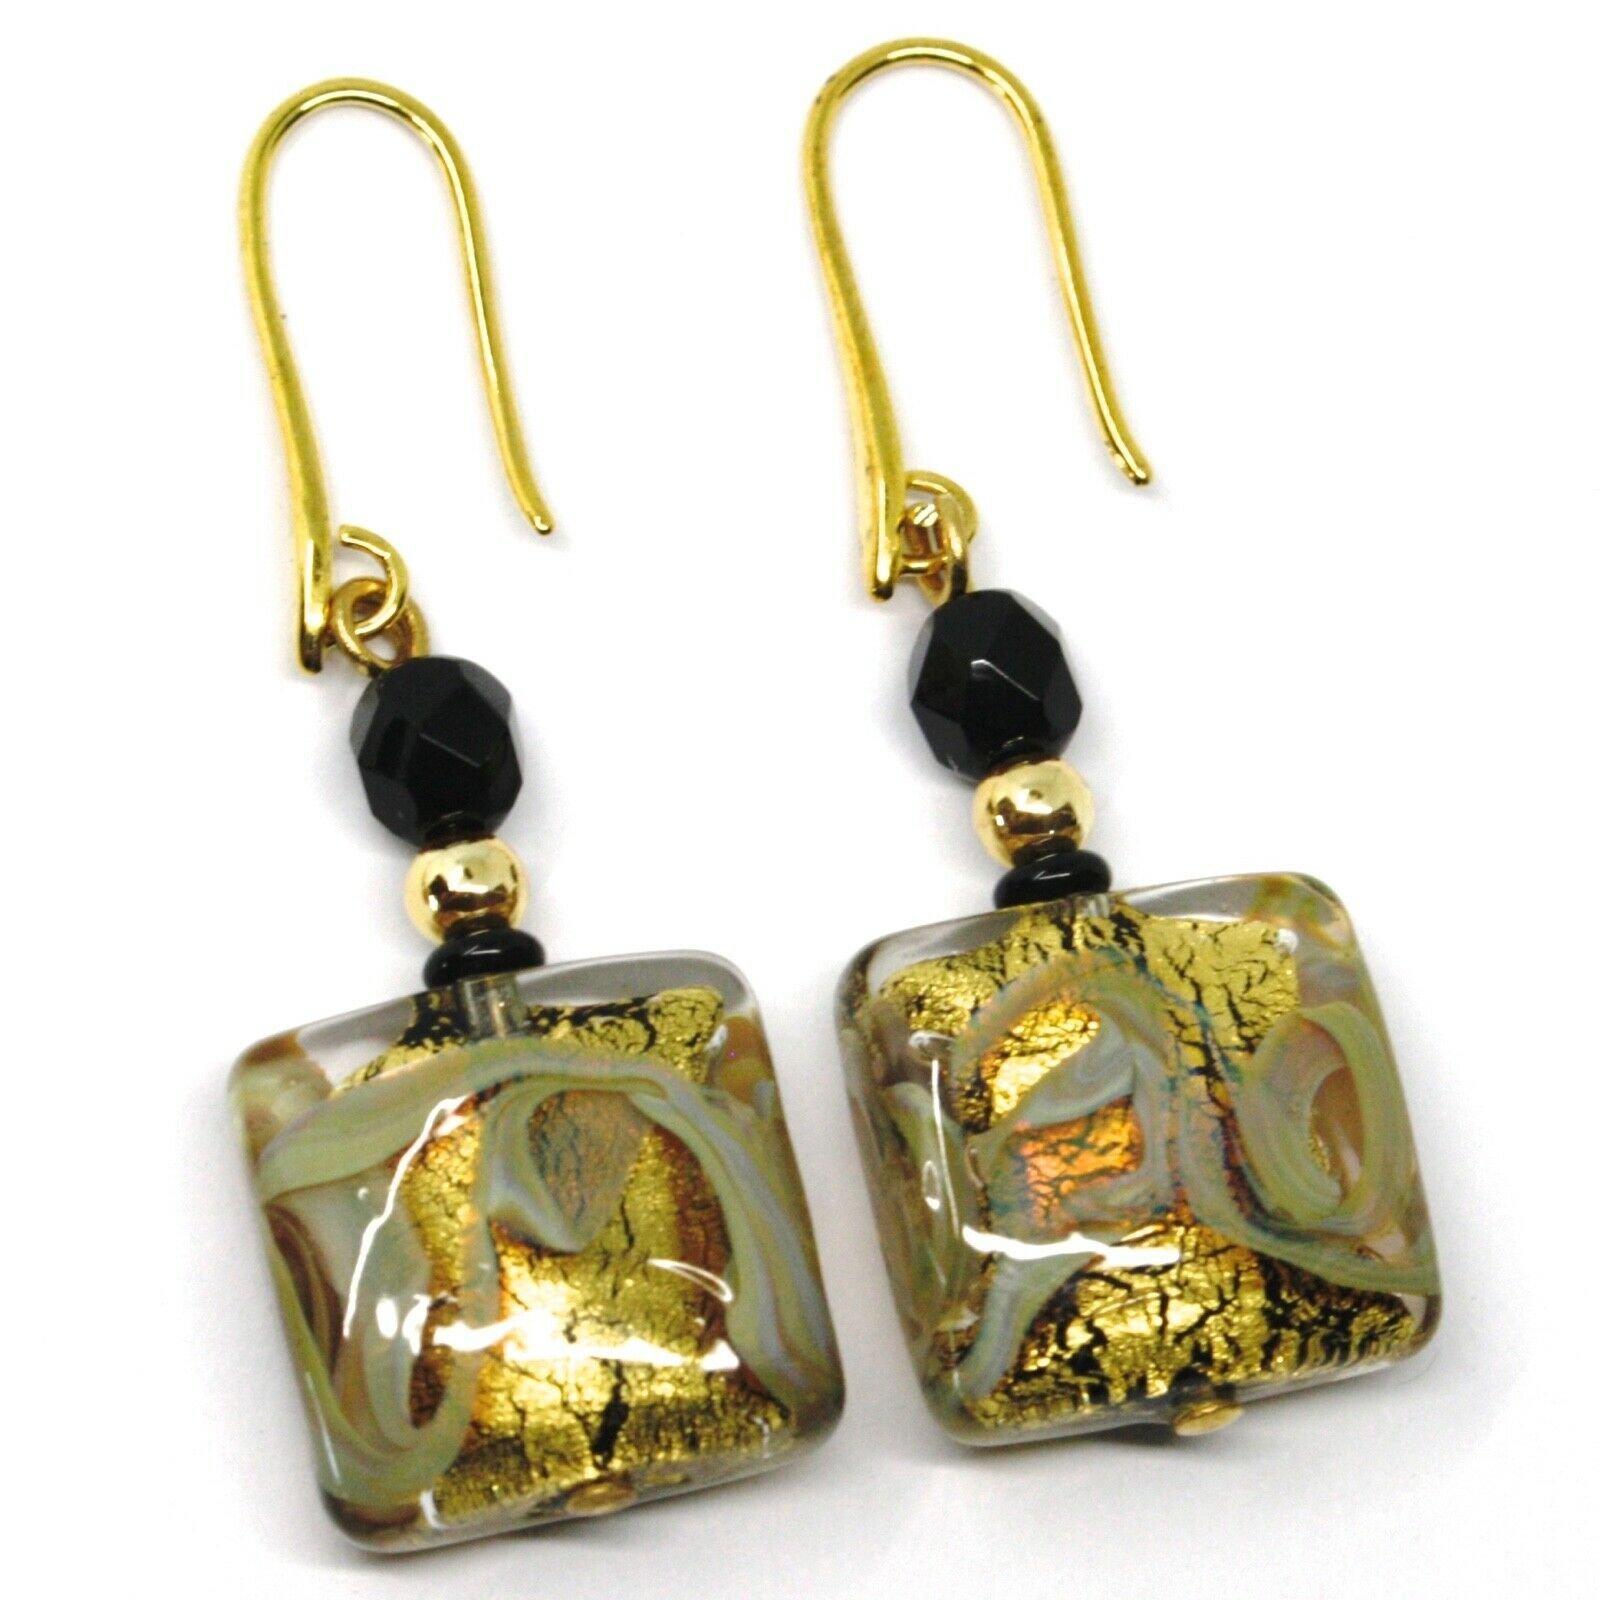 PENDANT EARRINGS WITH BLACK MURANO SQUARE GLASS & GOLD LEAF, MADE IN ITALY, 5cm